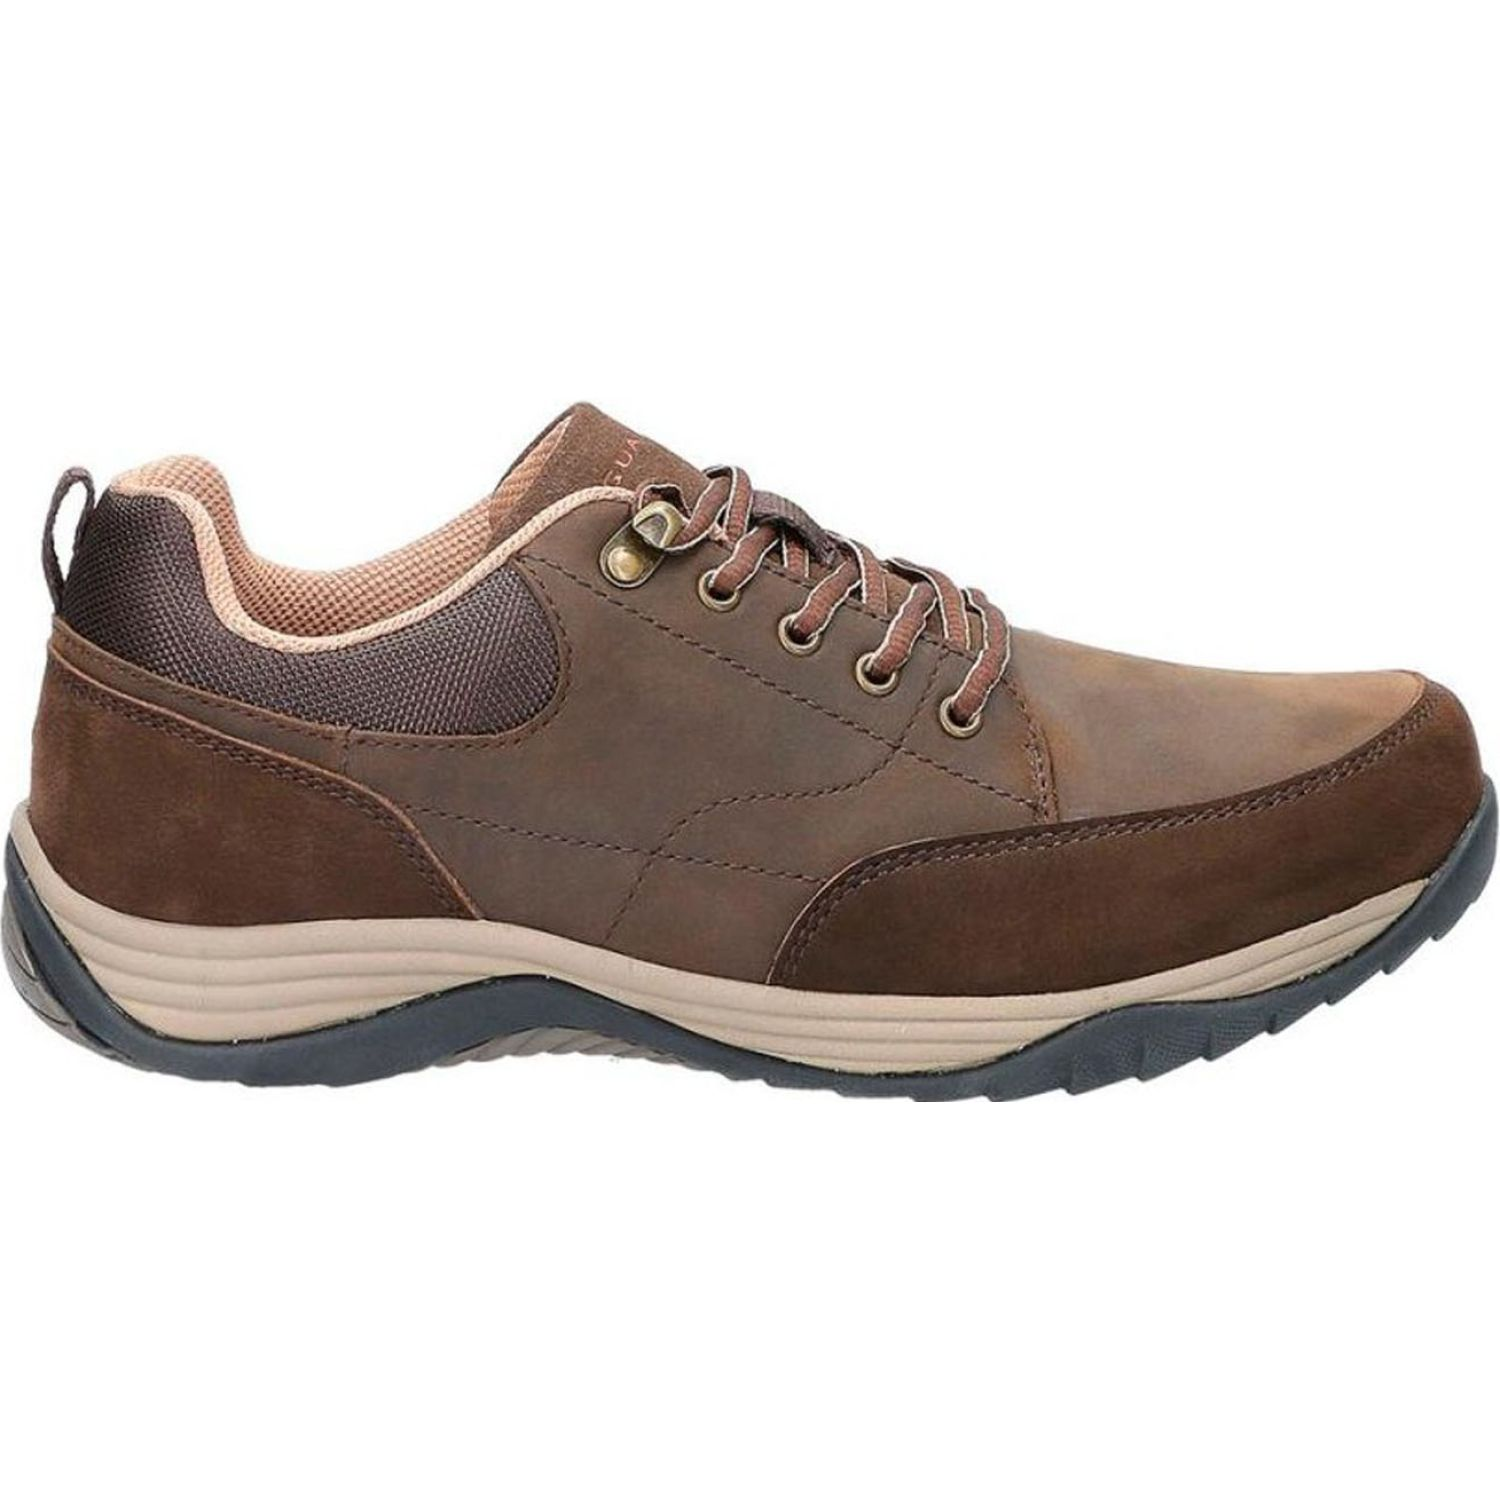 GUANTE buffalo Chocolate Oxfords